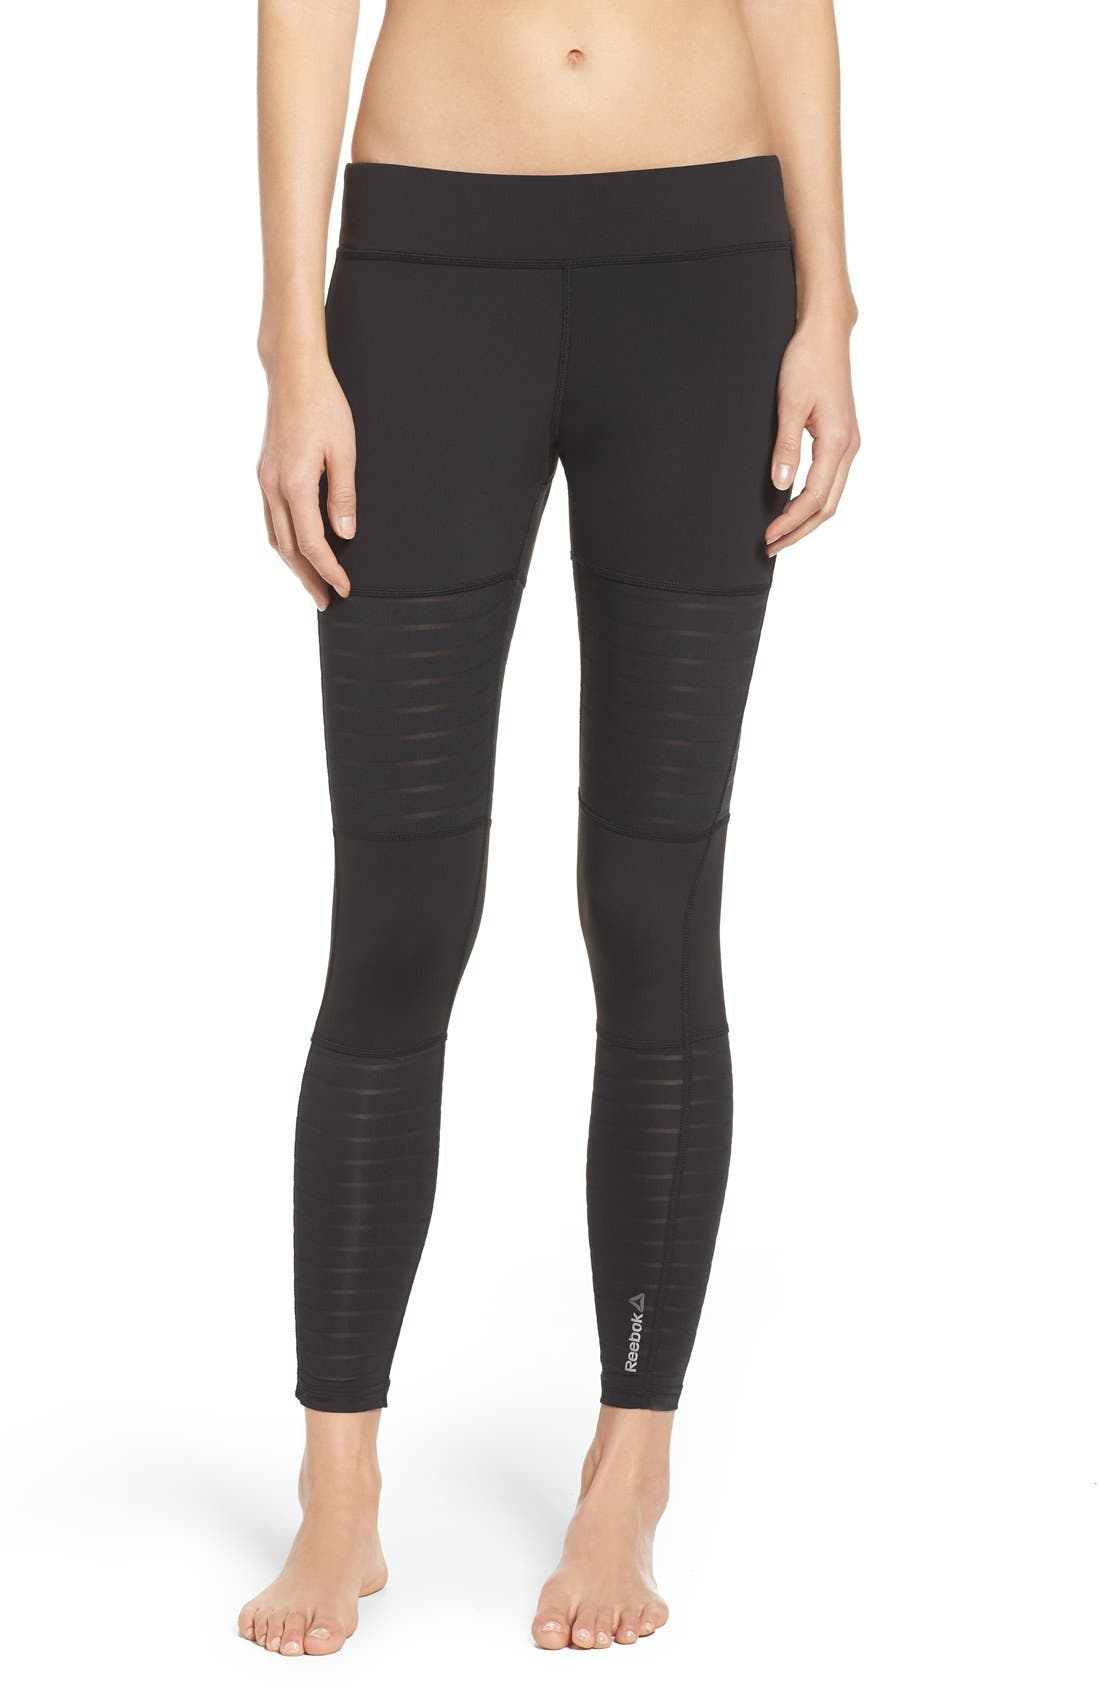 Alternate Image 1 Selected - Reebok Dance Mesh Leggings